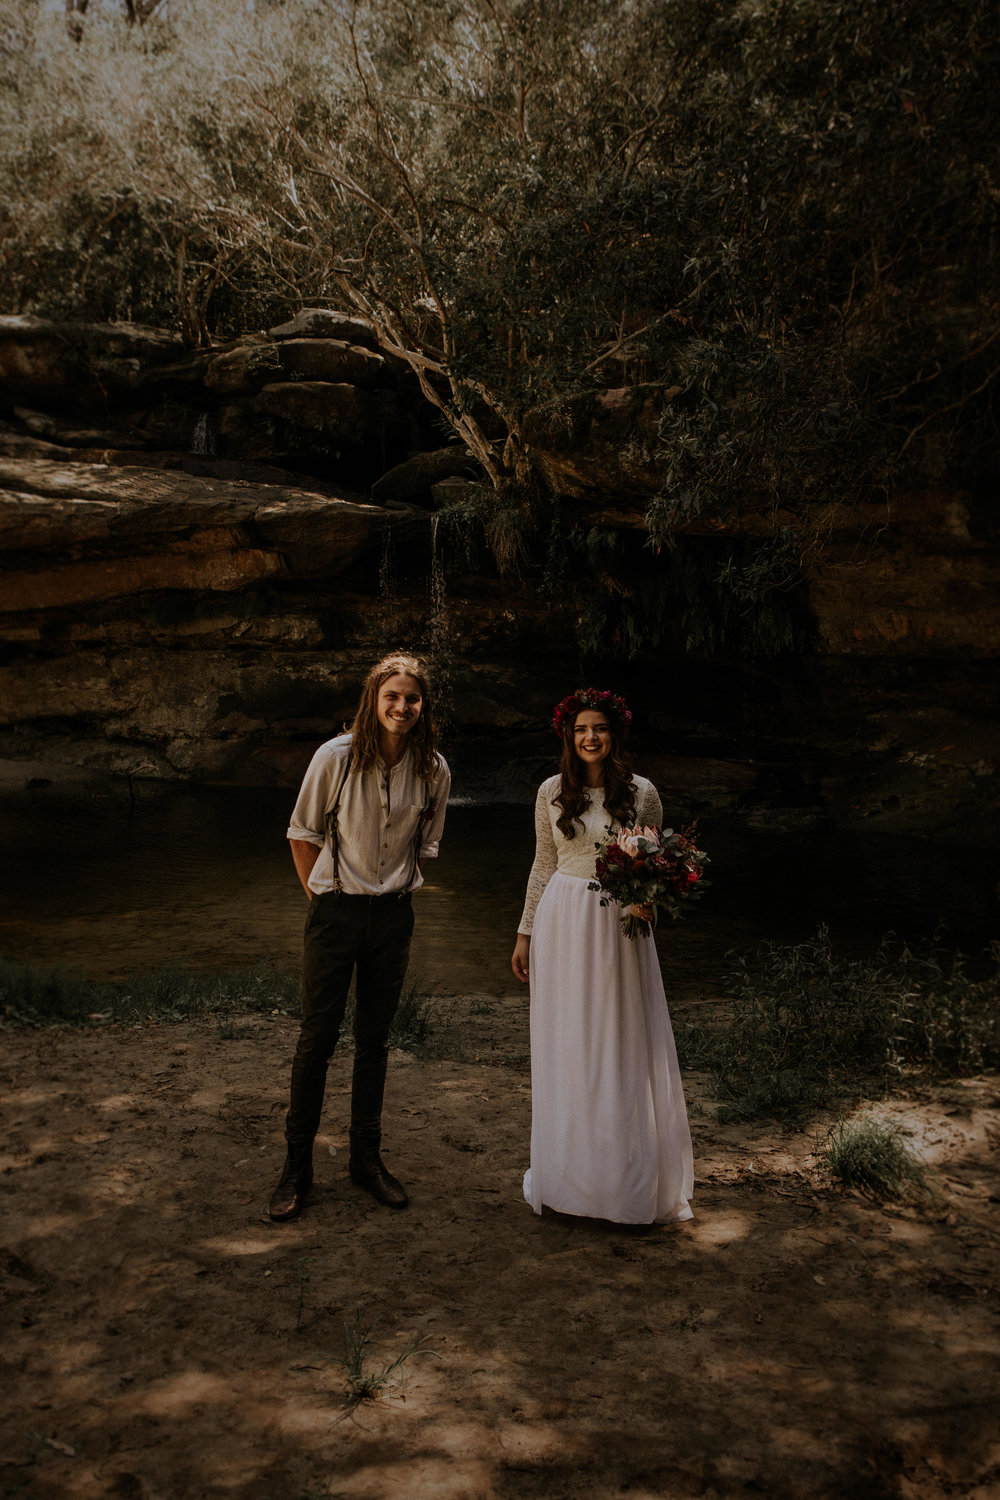 beth & caleb - kings & thieves elopement wedding photography -- submission 115.jpg